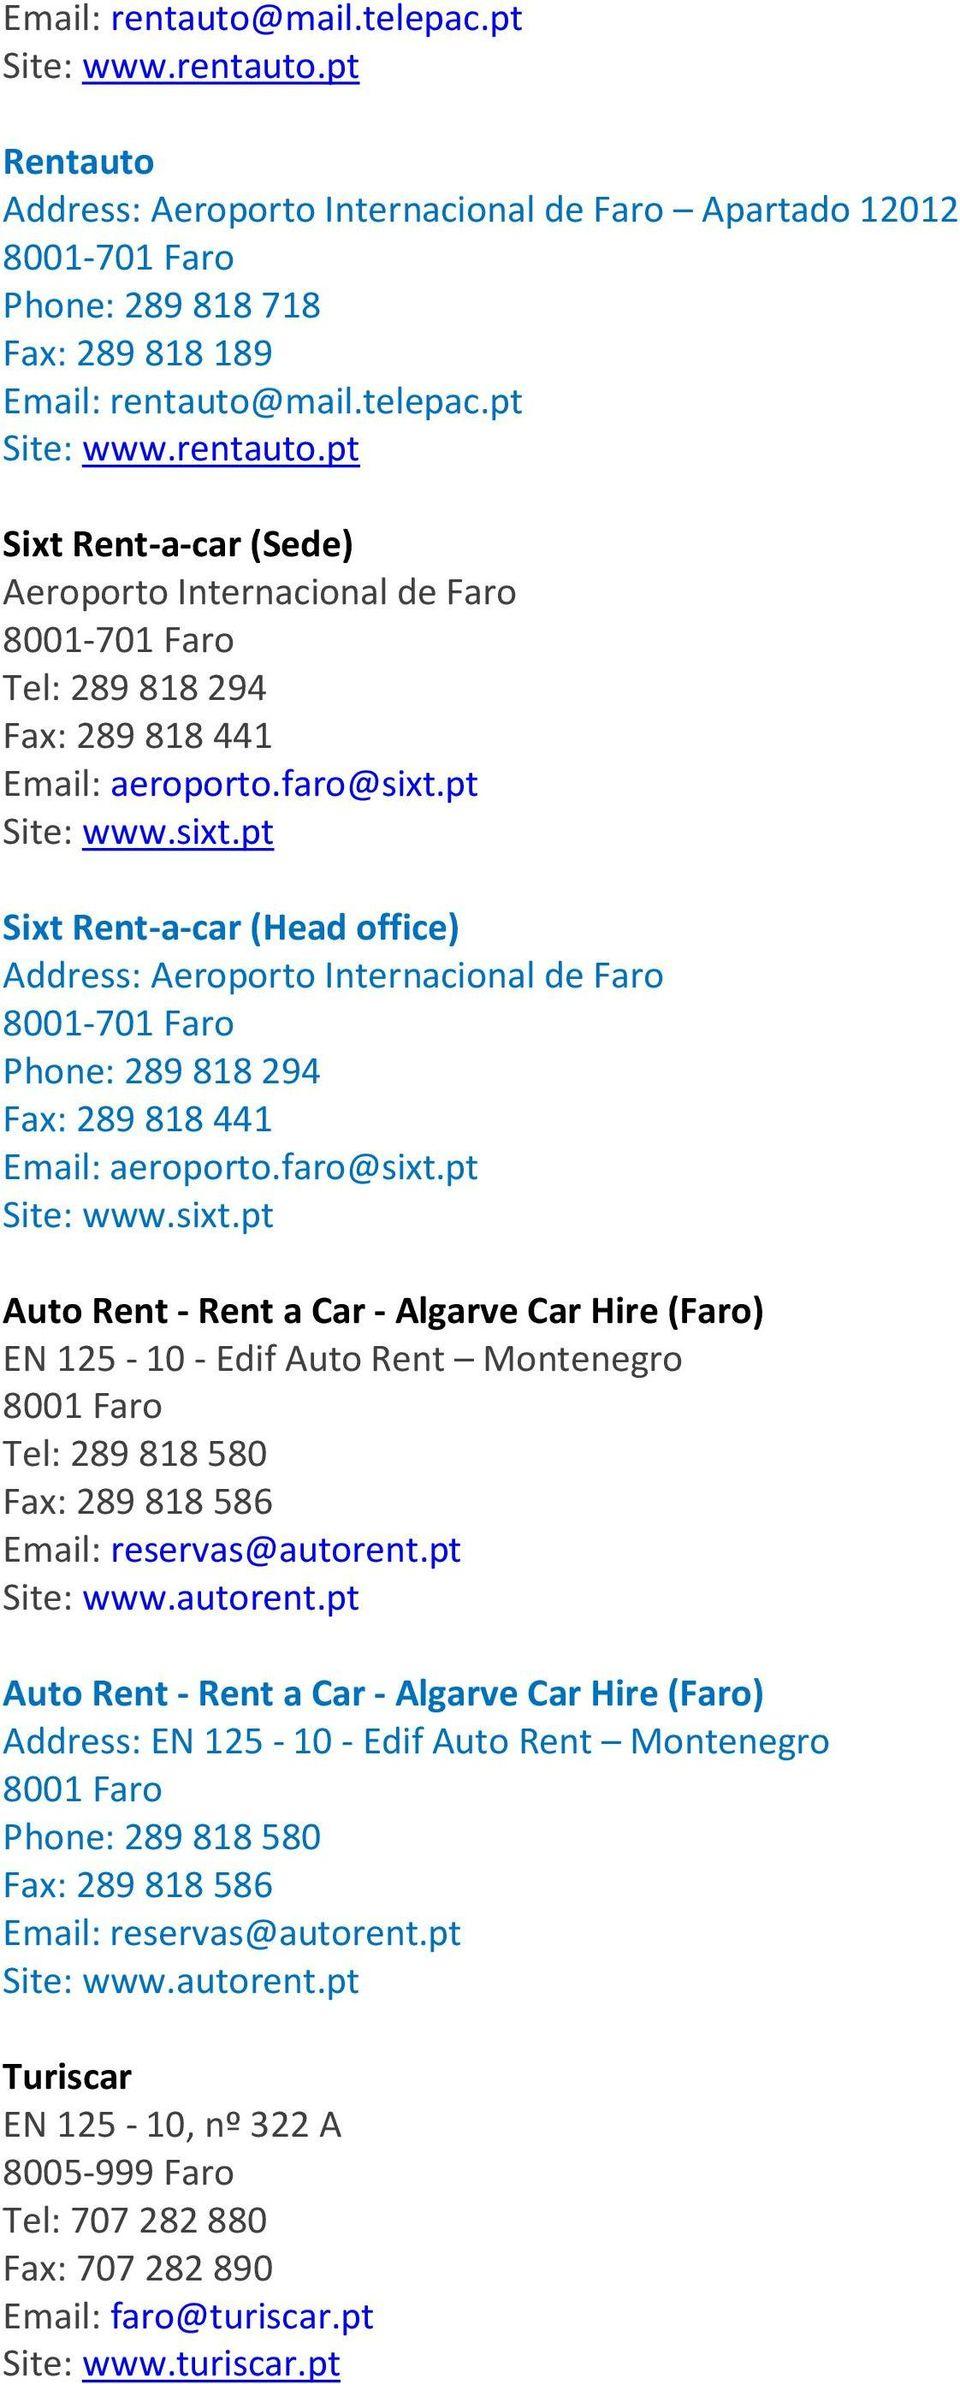 pt Site: www.autorent.pt Auto Rent - Rent a Car - Algarve Car Hire (Faro) Address: EN 125-10 - Edif Auto Rent Montenegro 8001 Faro Phone: 289 818 580 Fax: 289 818 586 Email: reservas@autorent.